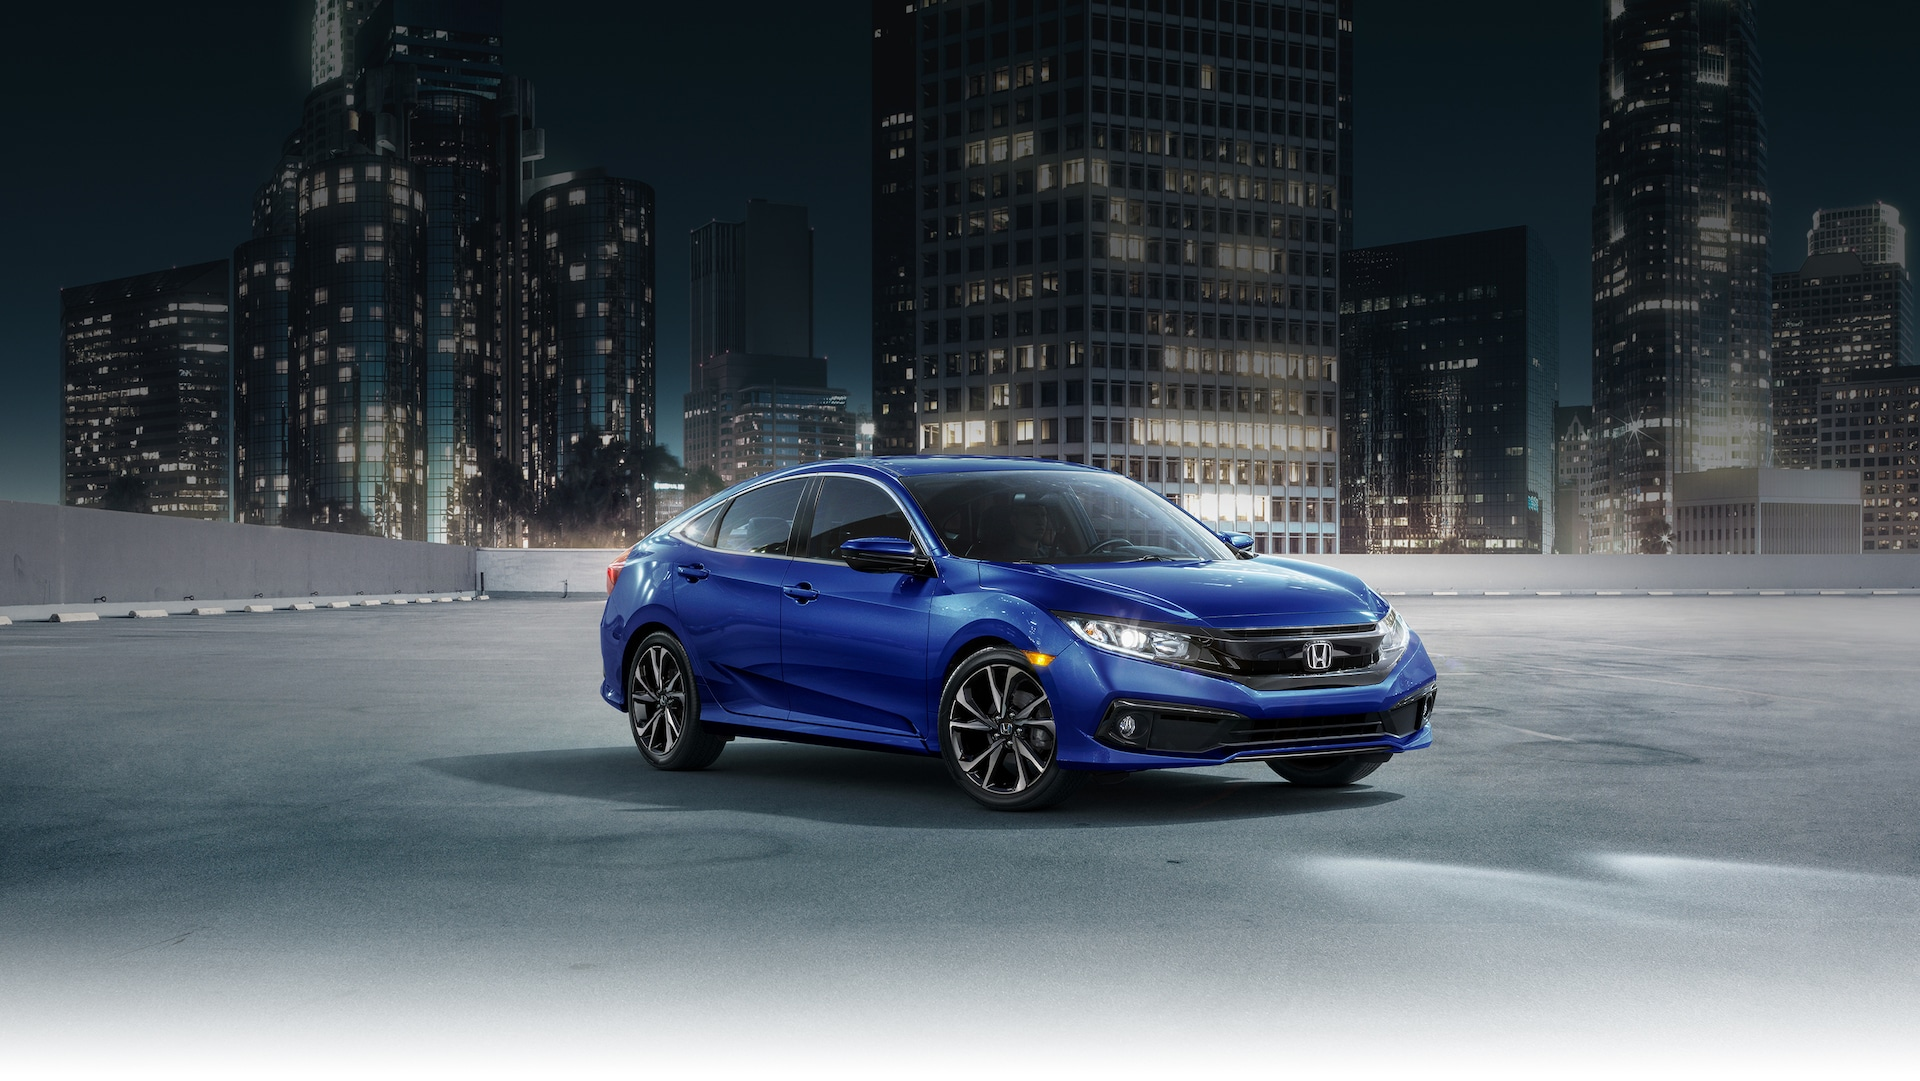 2021 Civic Sedan Sporty Design Honda